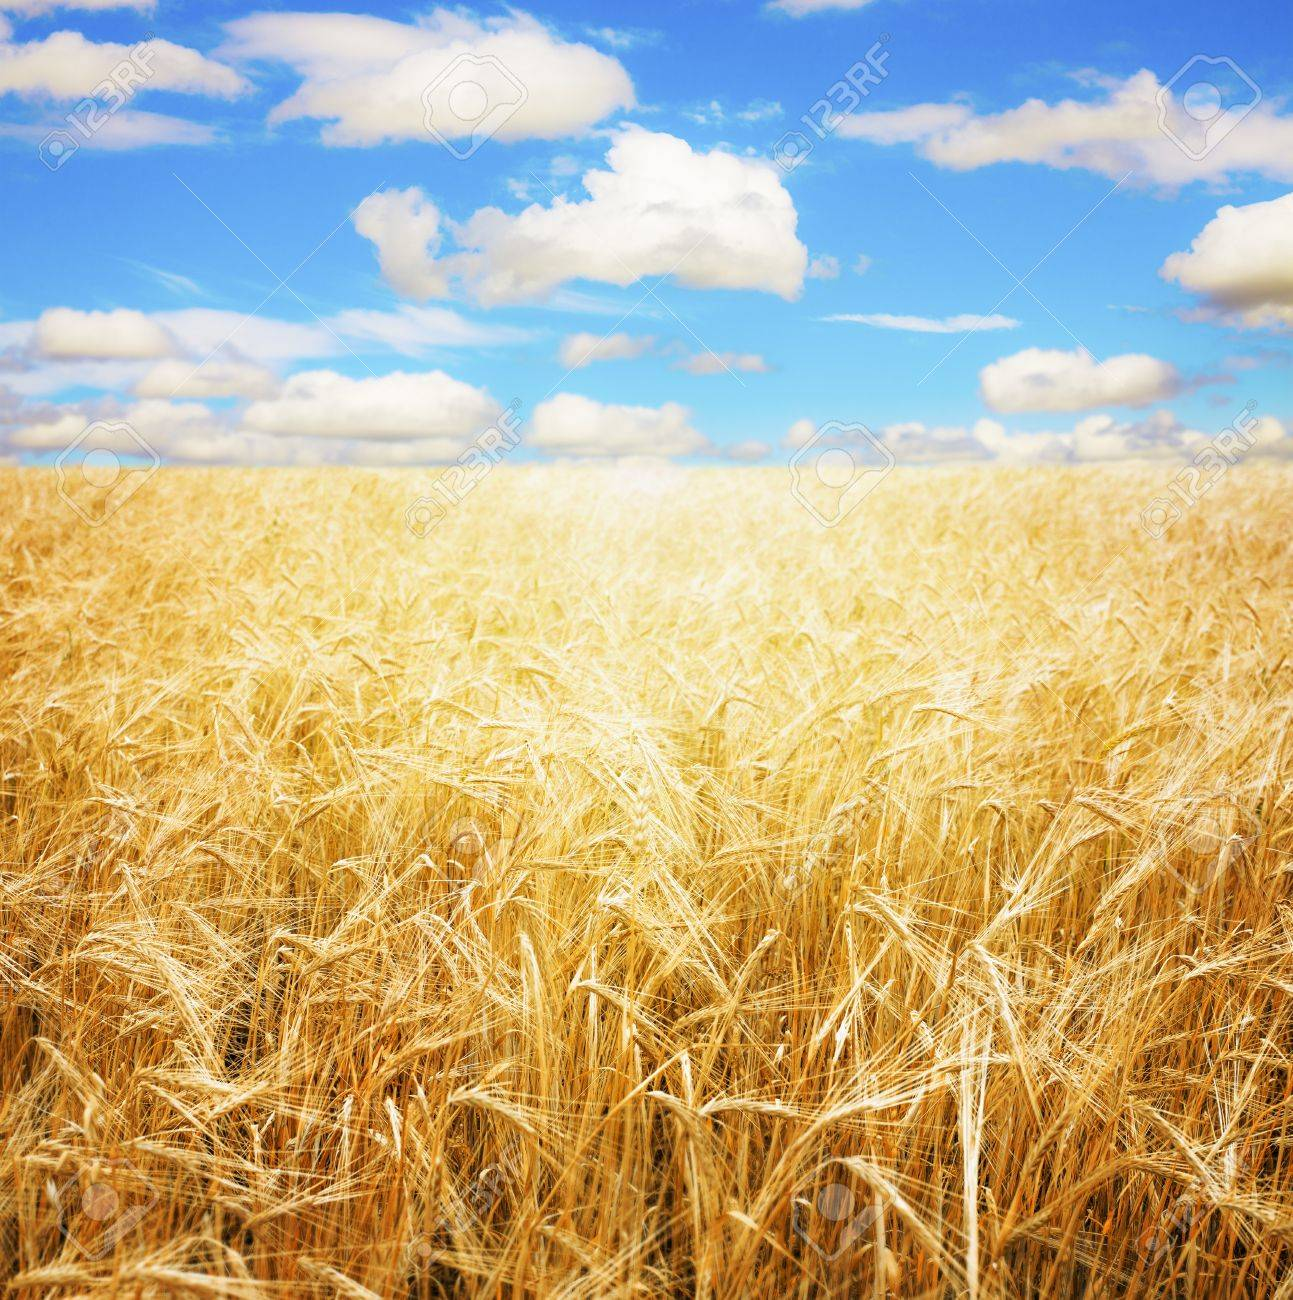 Wheat field and blue sky Stock Photo - 19877123